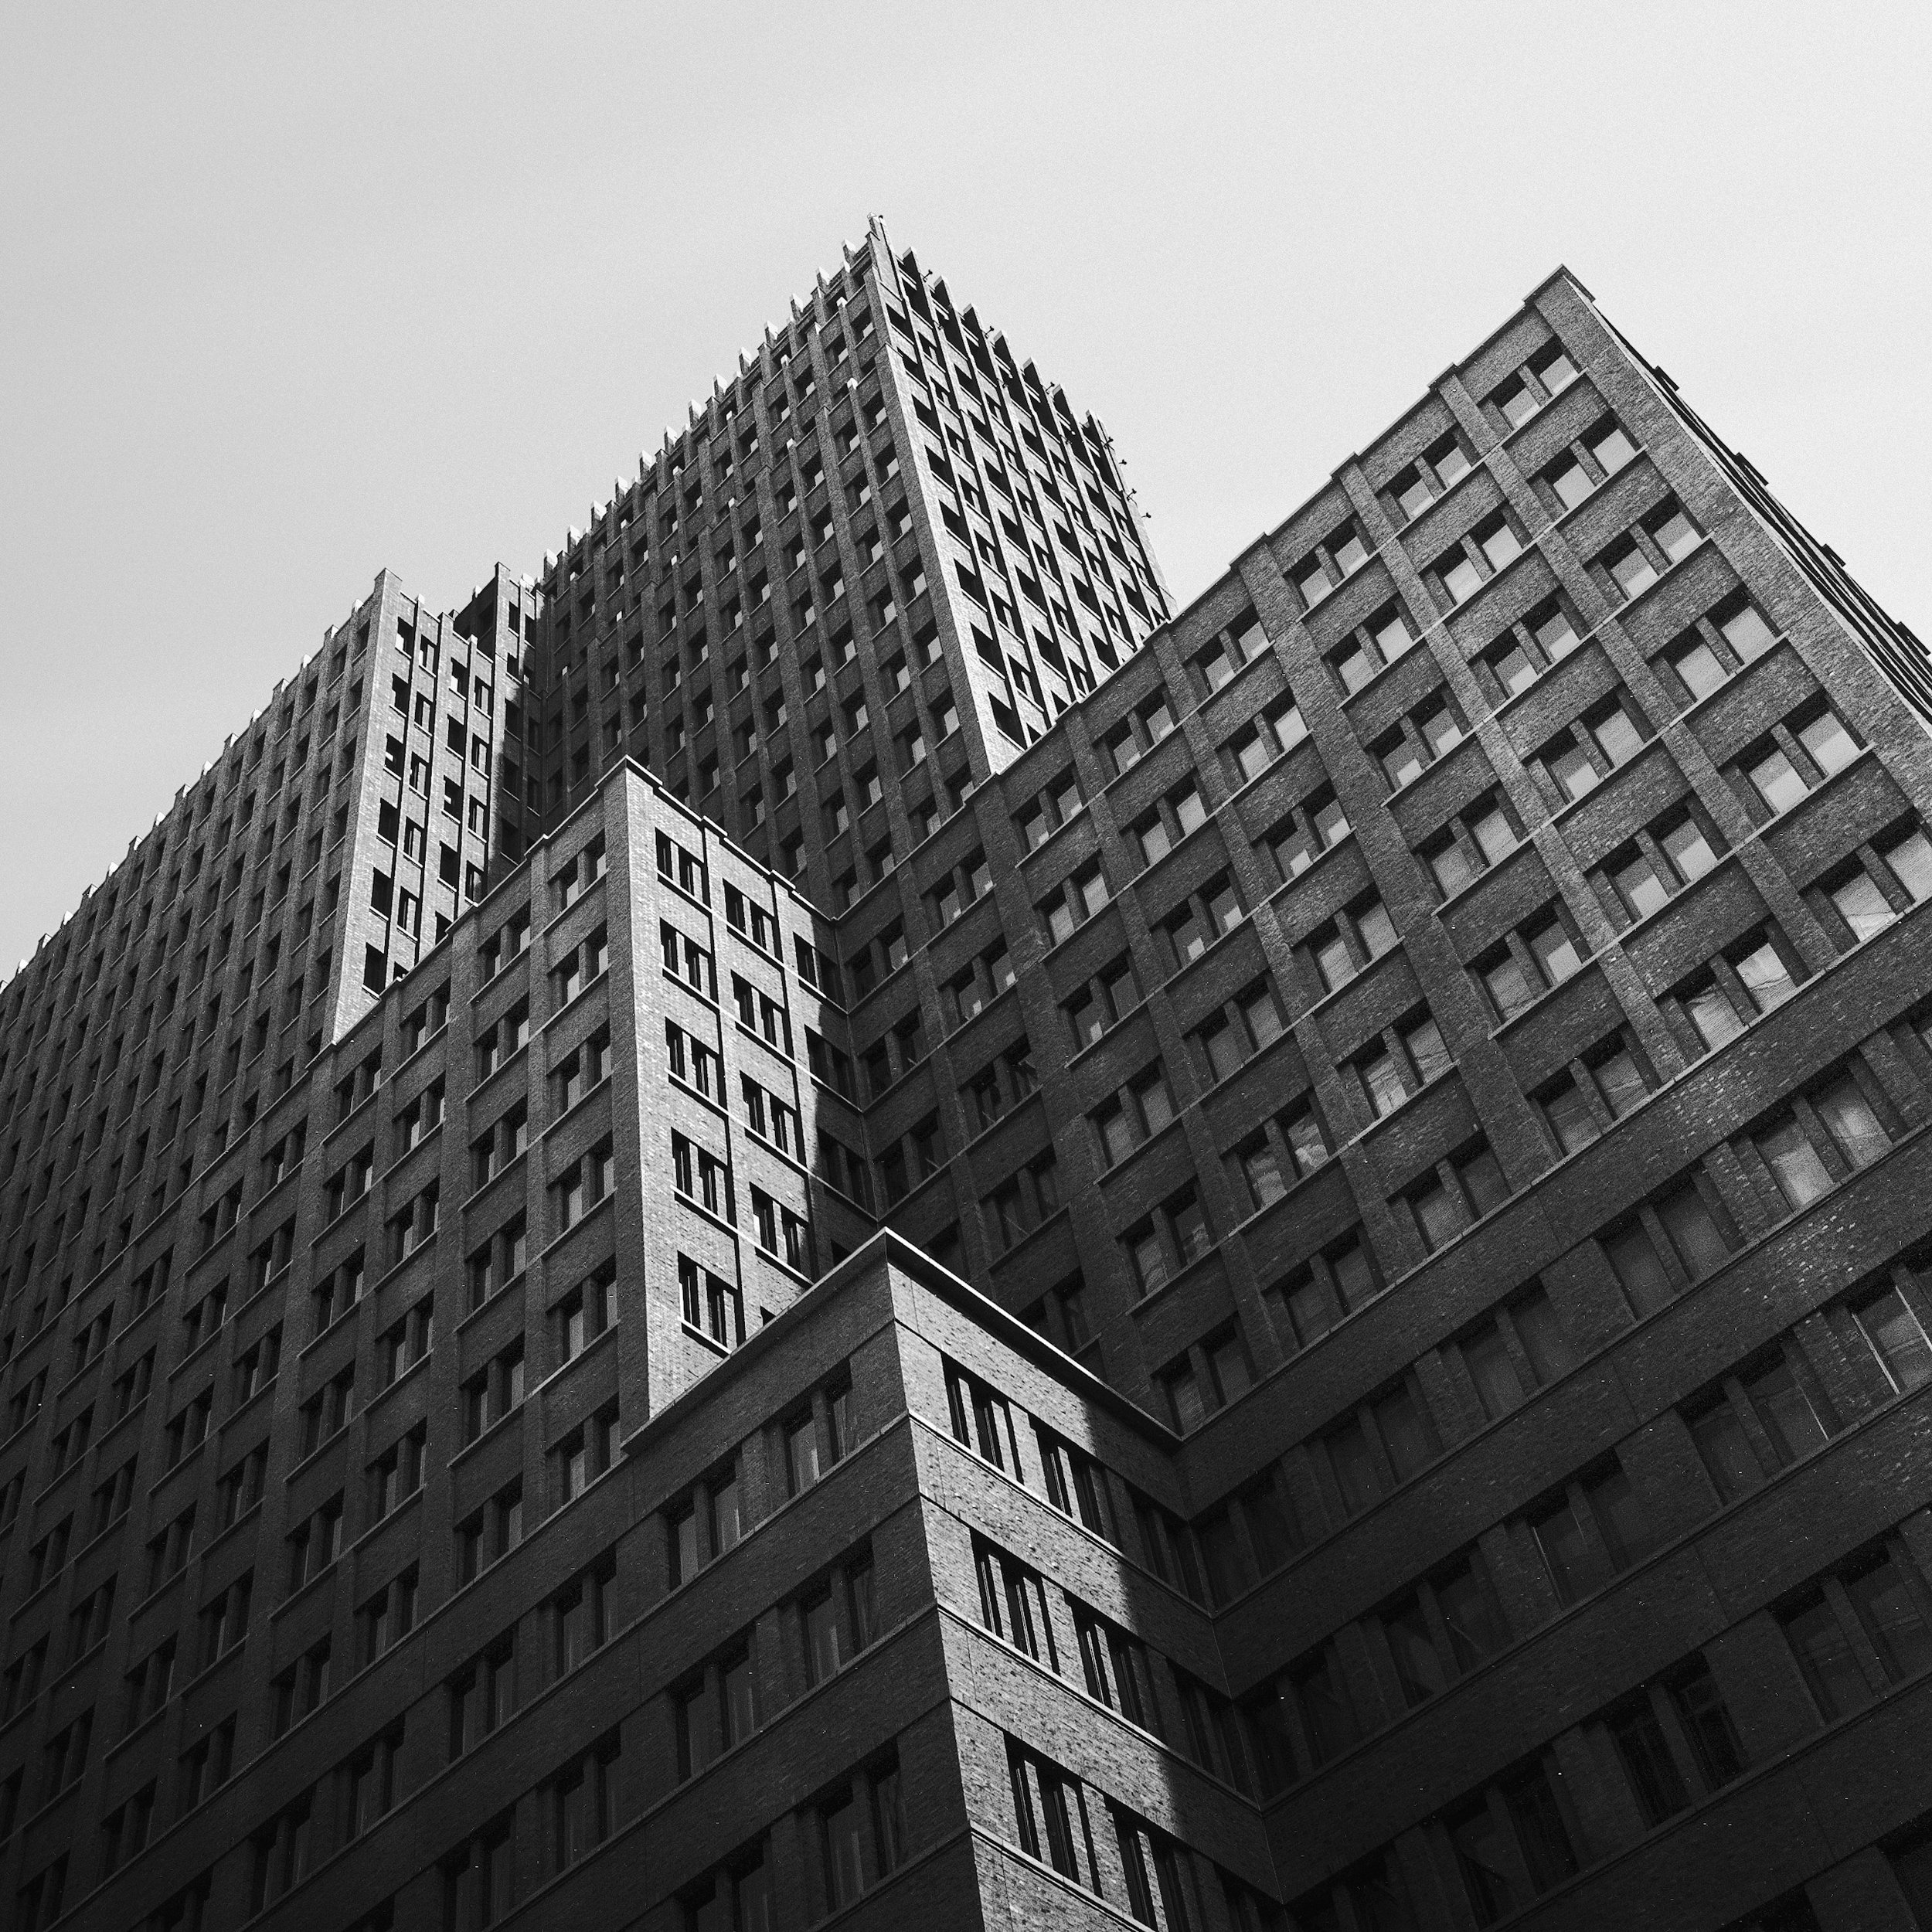 STARING AT BUILDINGS - BLACK & WHITE ARCHITECTURE